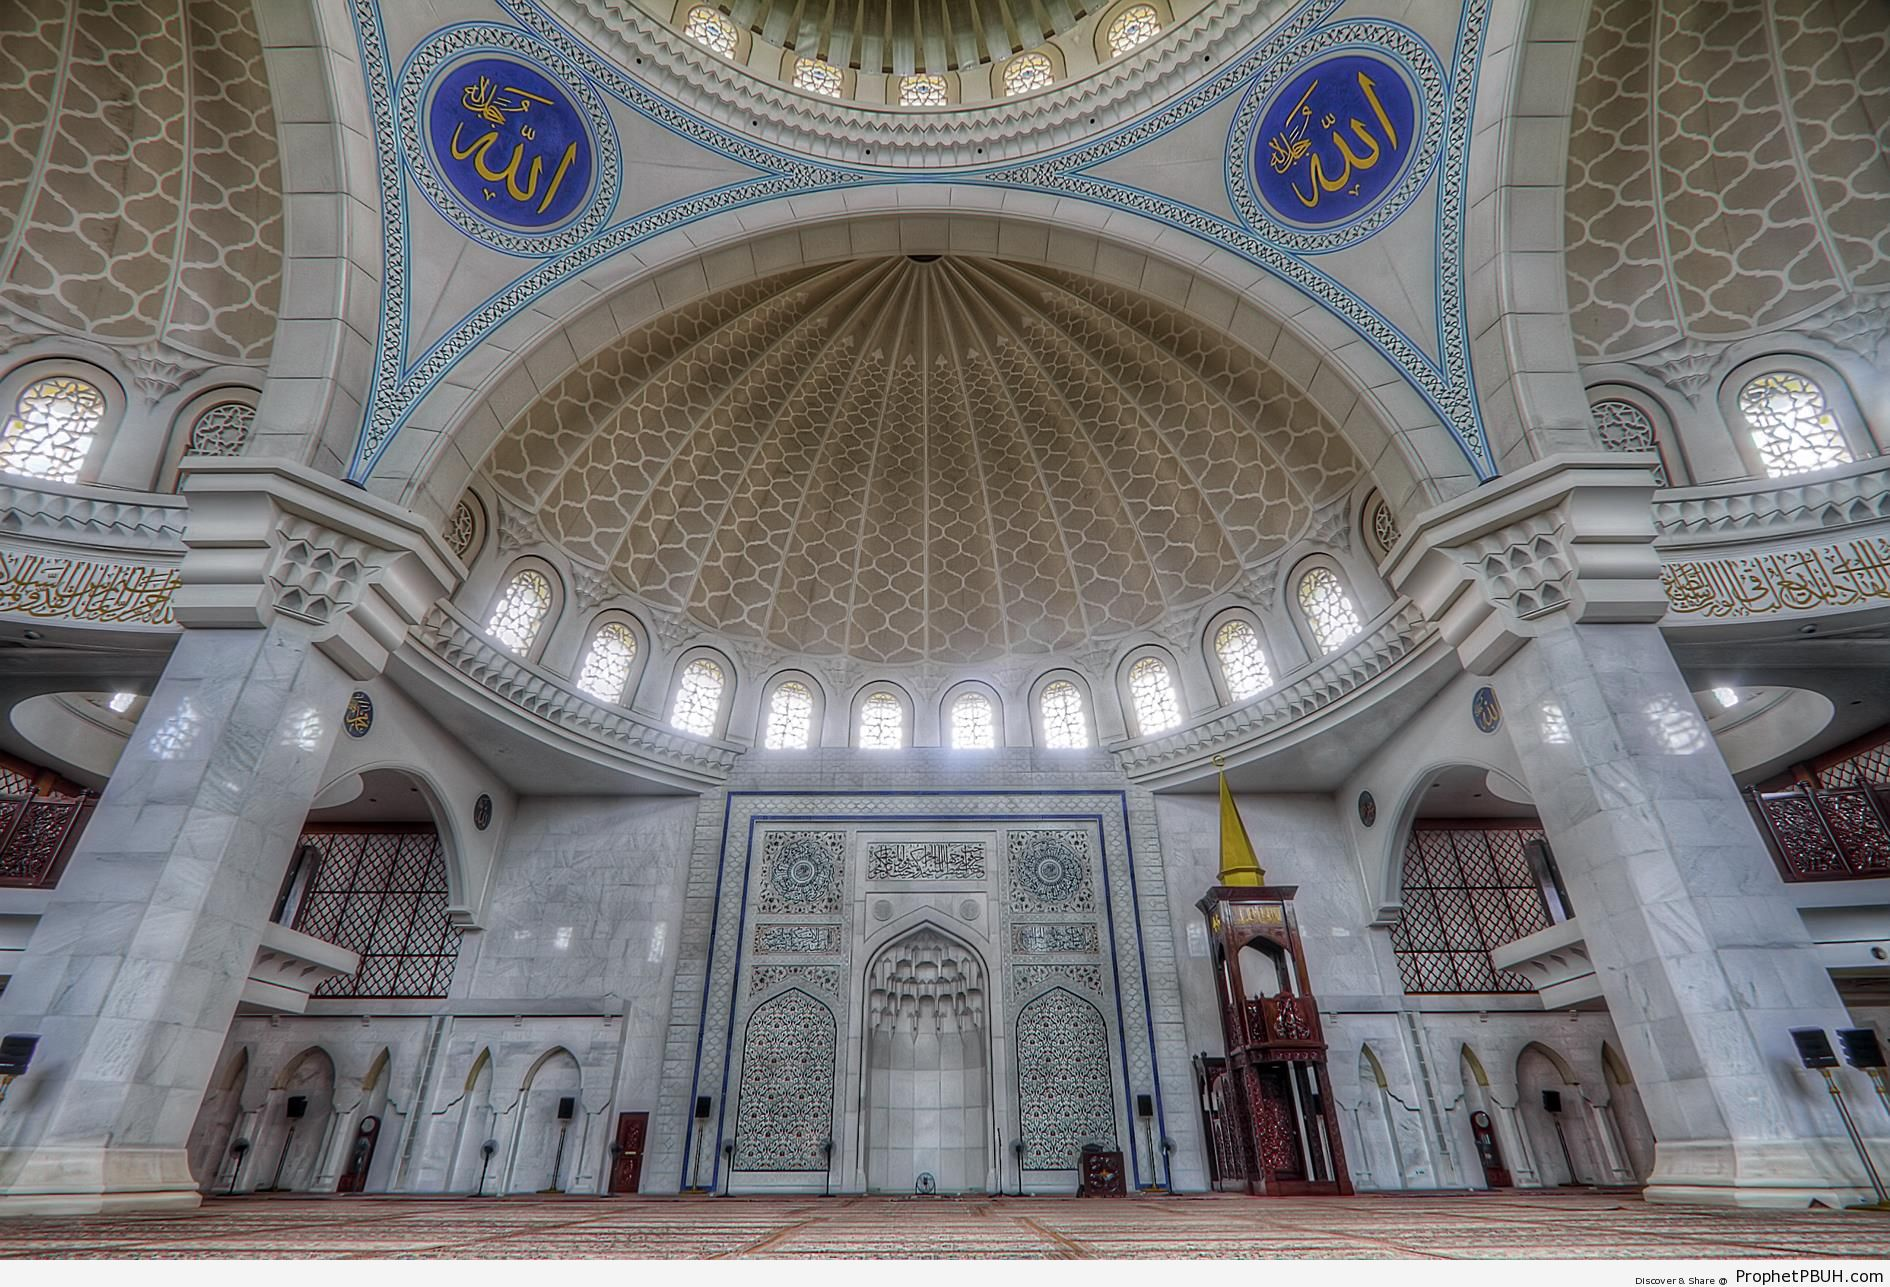 Prayer Hall and Mihrab of the Wilayah Masjid in Kuala Lampur, Malaysia - Allah Calligraphy and Typography